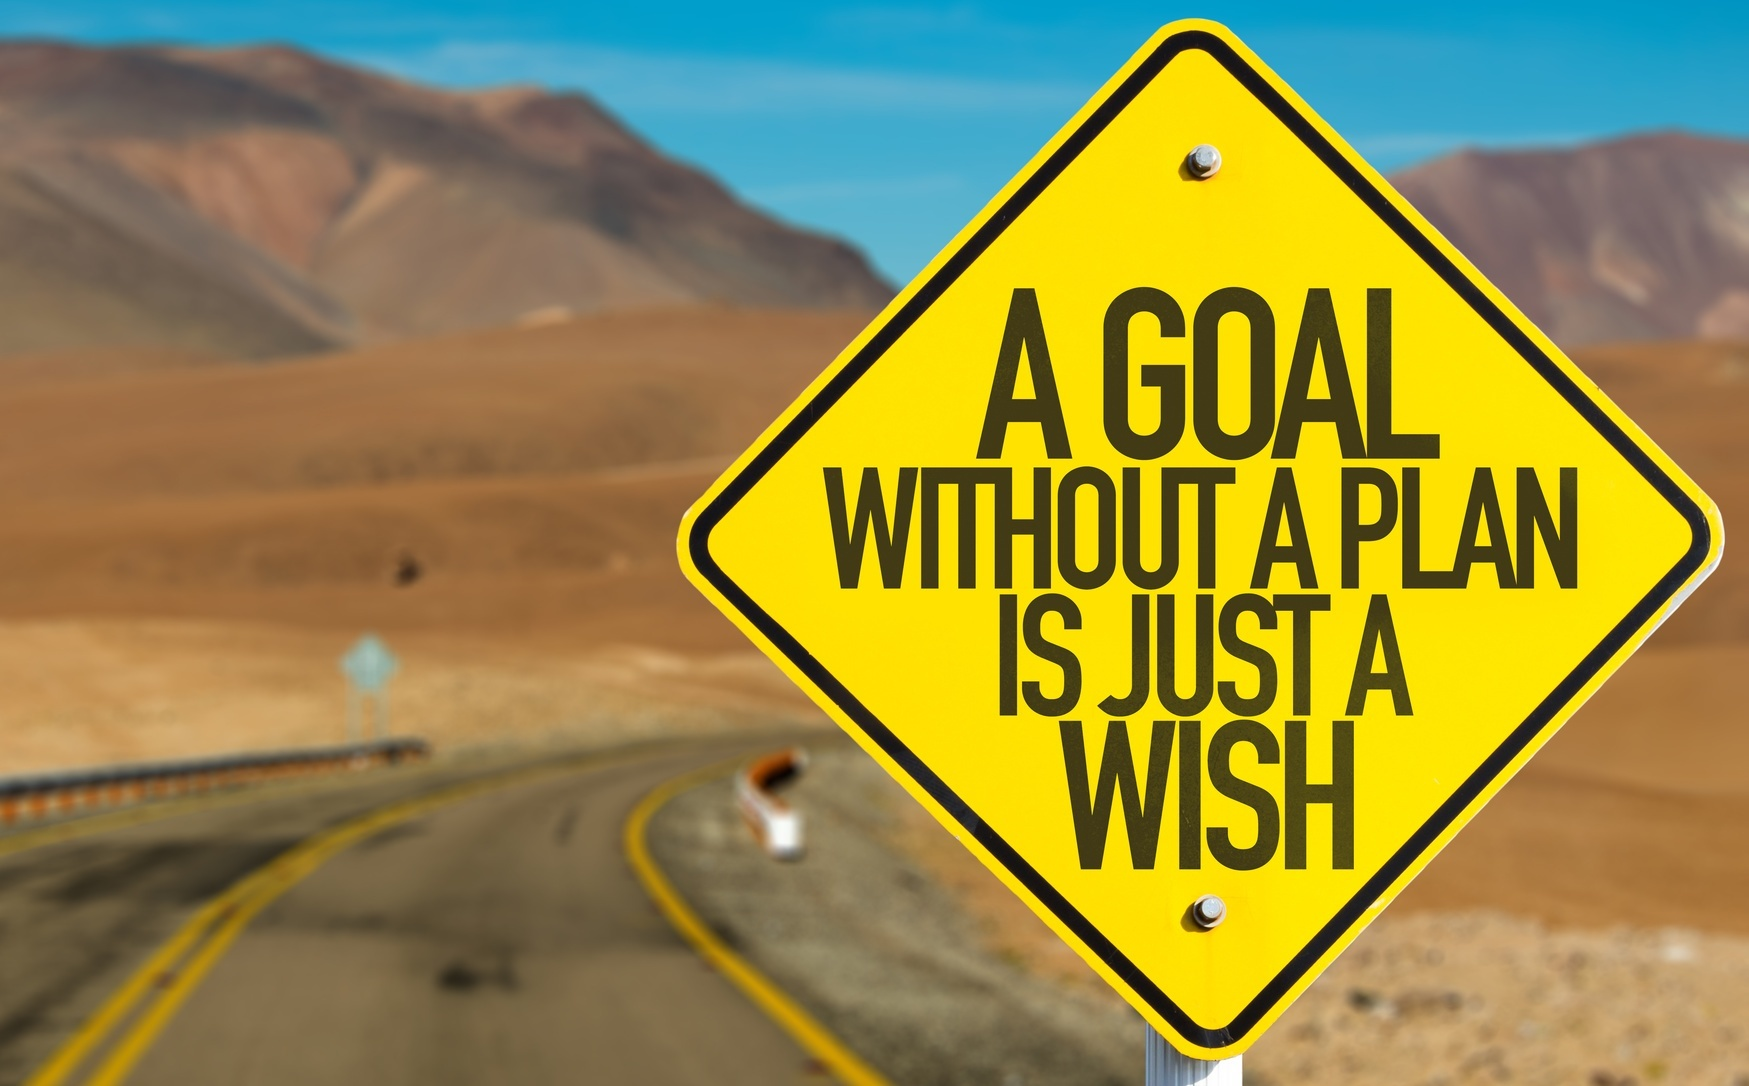 MAKE REALISTIC, SPECIFIC GOALS WHEN LEARNING A LANGUAGE